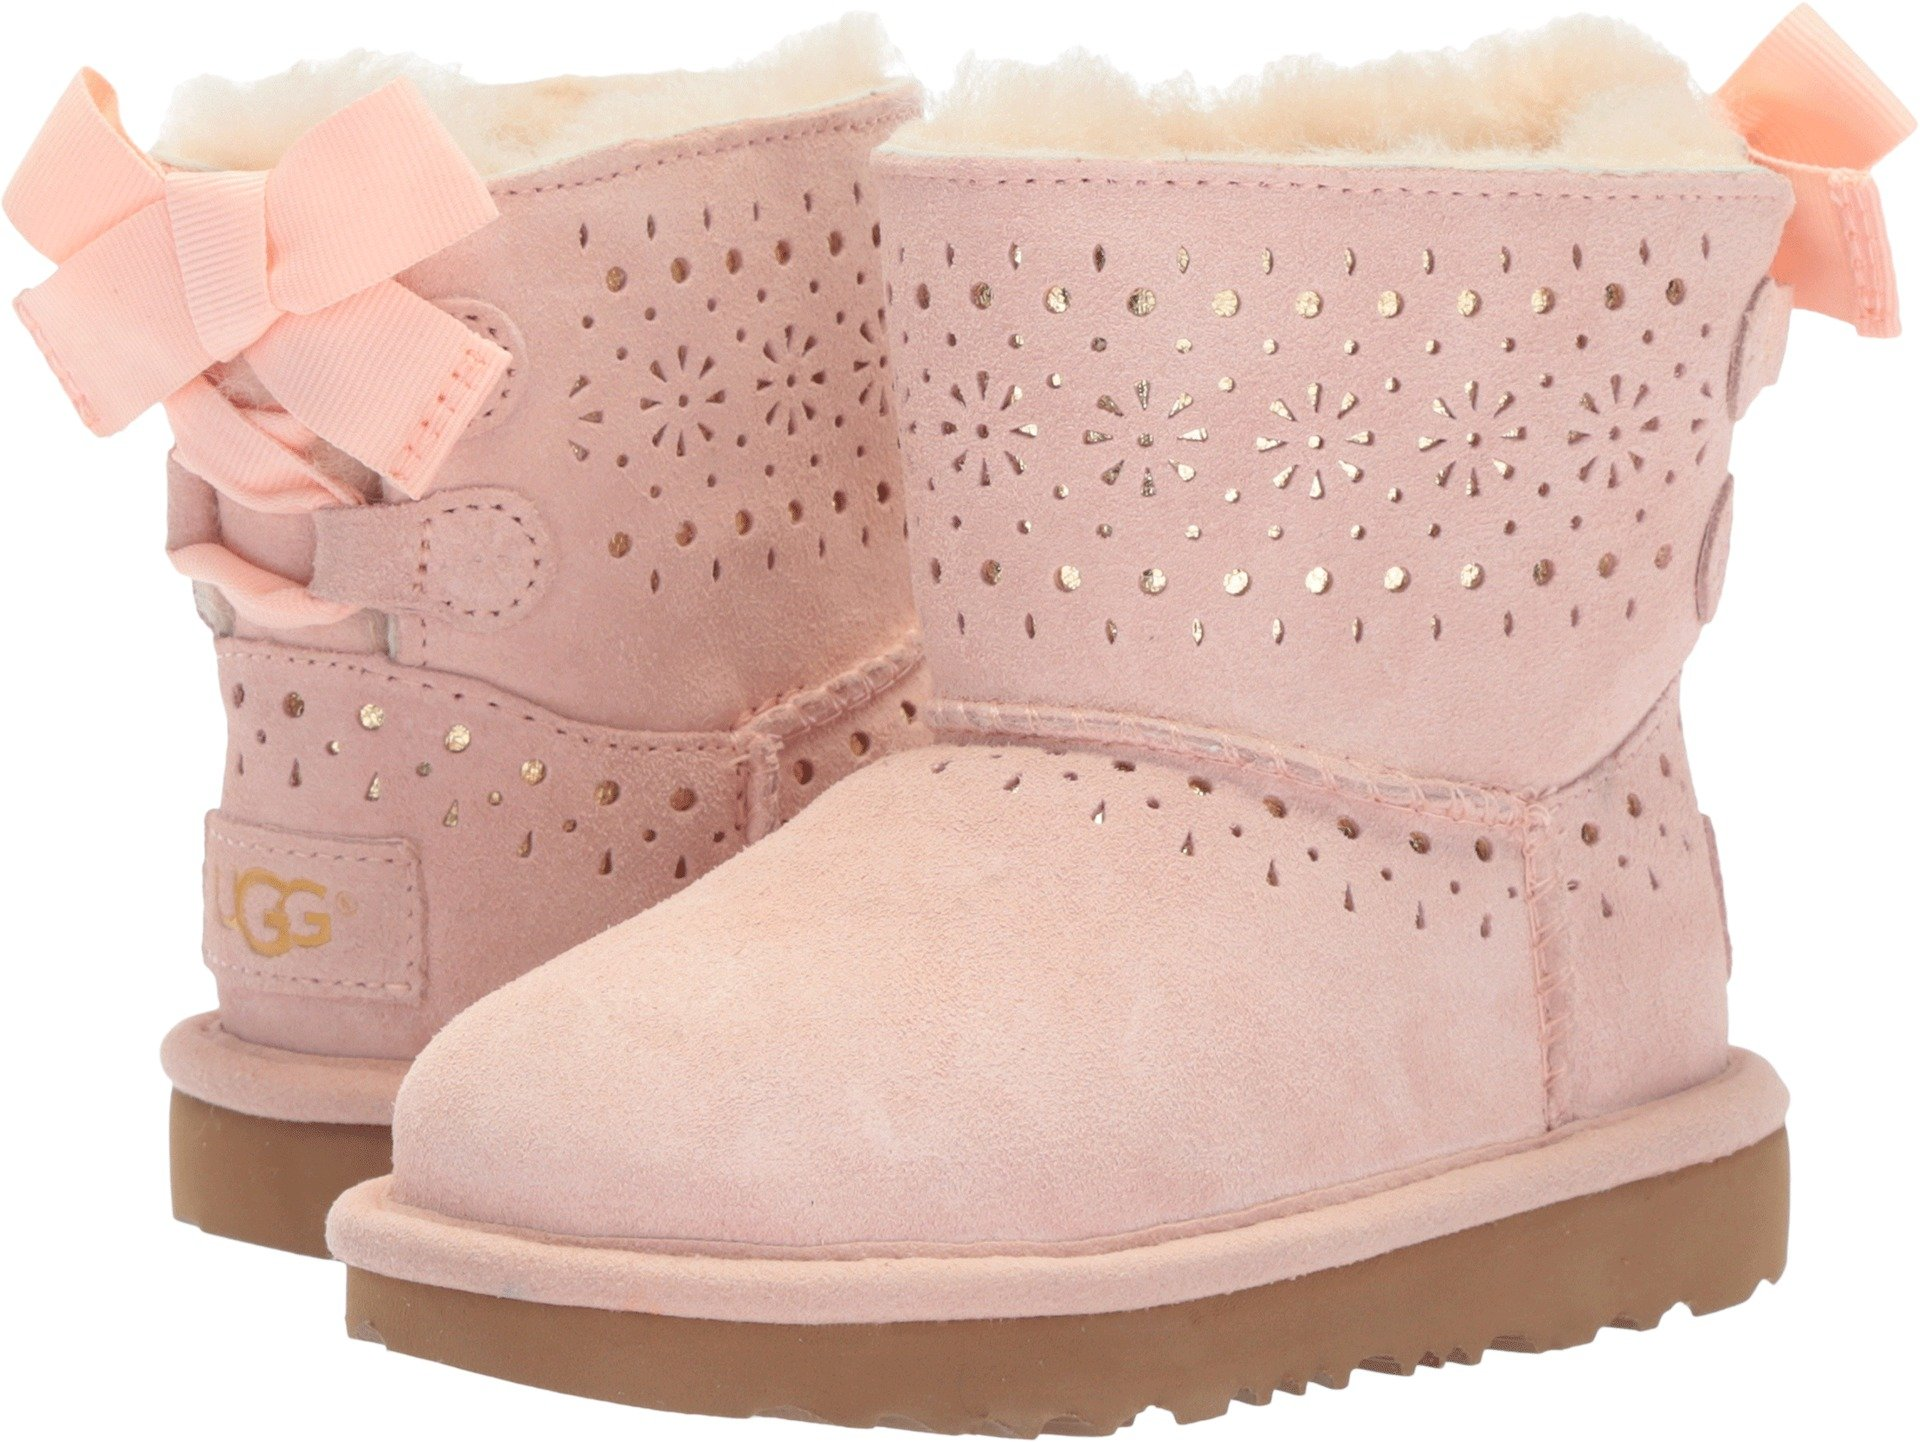 UGG Little Kids Dae Sunshine Perf Boot Baby Pink Size 12 Little Kid M